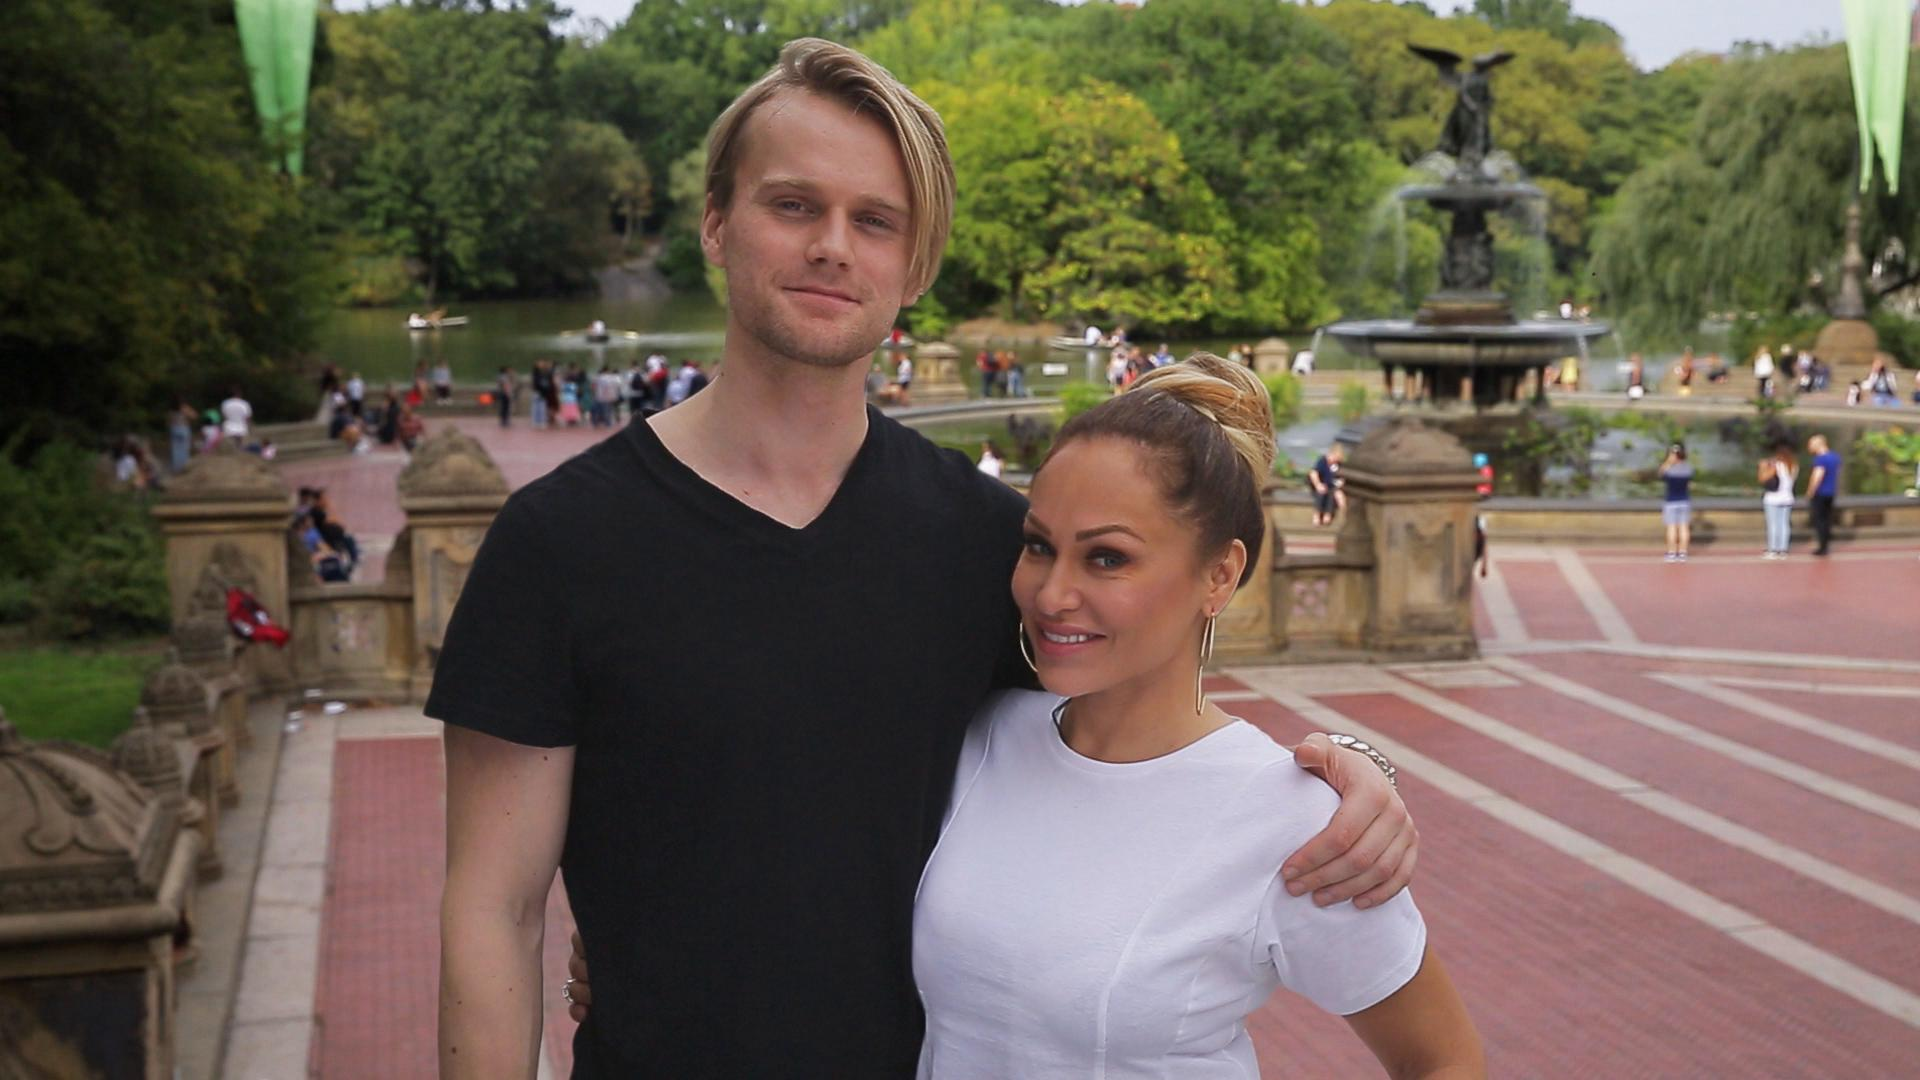 Dating site 90 day fiance in Perth